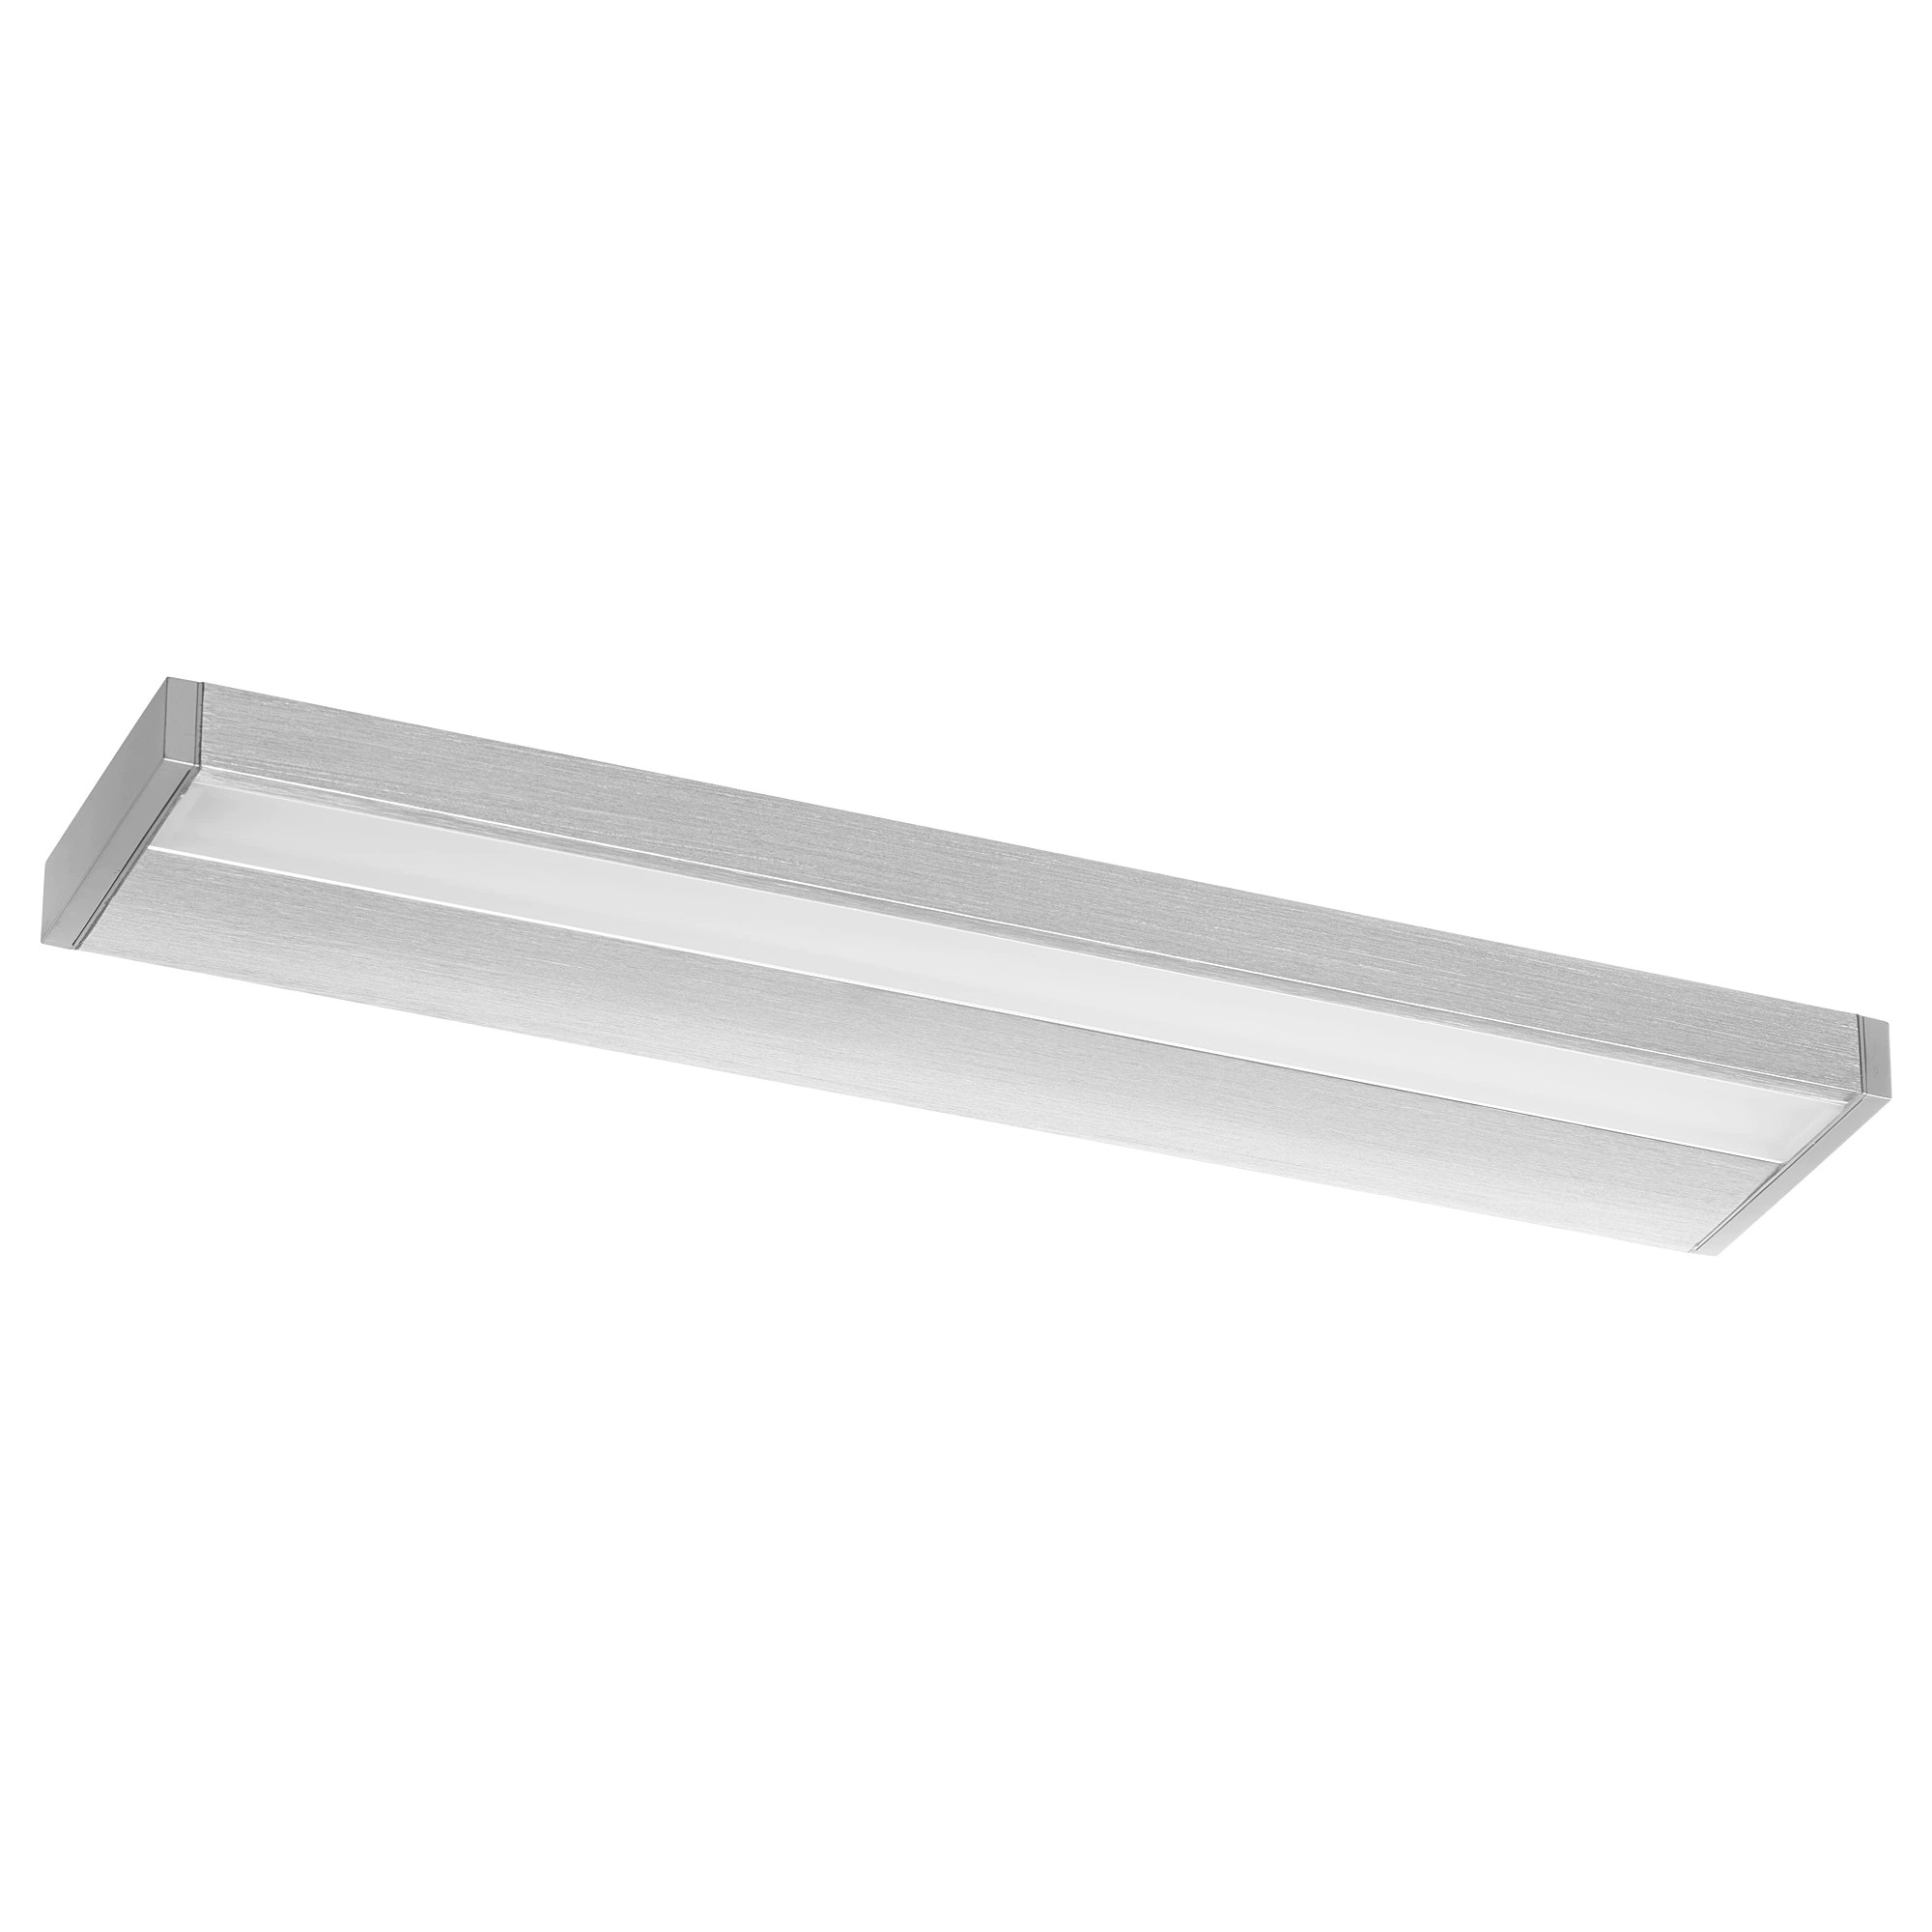 60 Cm Godmorgon Led Cabinet Wall Light